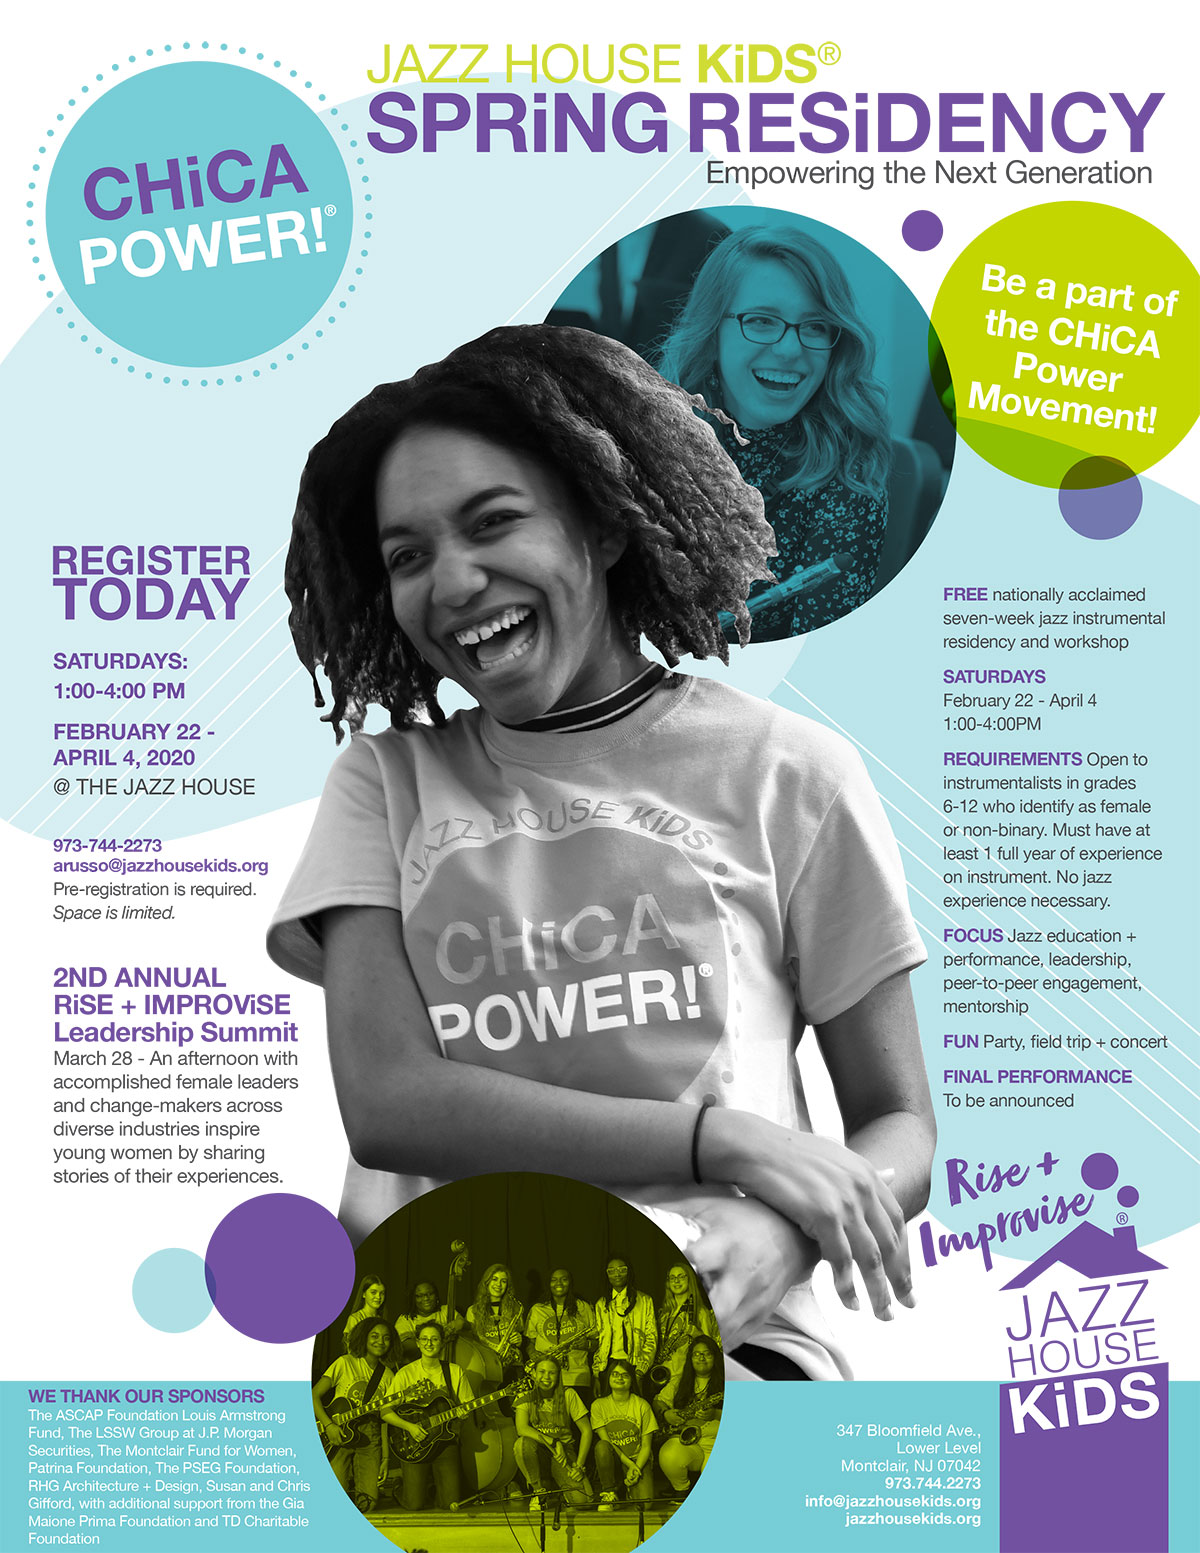 CHiCA Power 2020 with JAZZ HOUSE KiDS